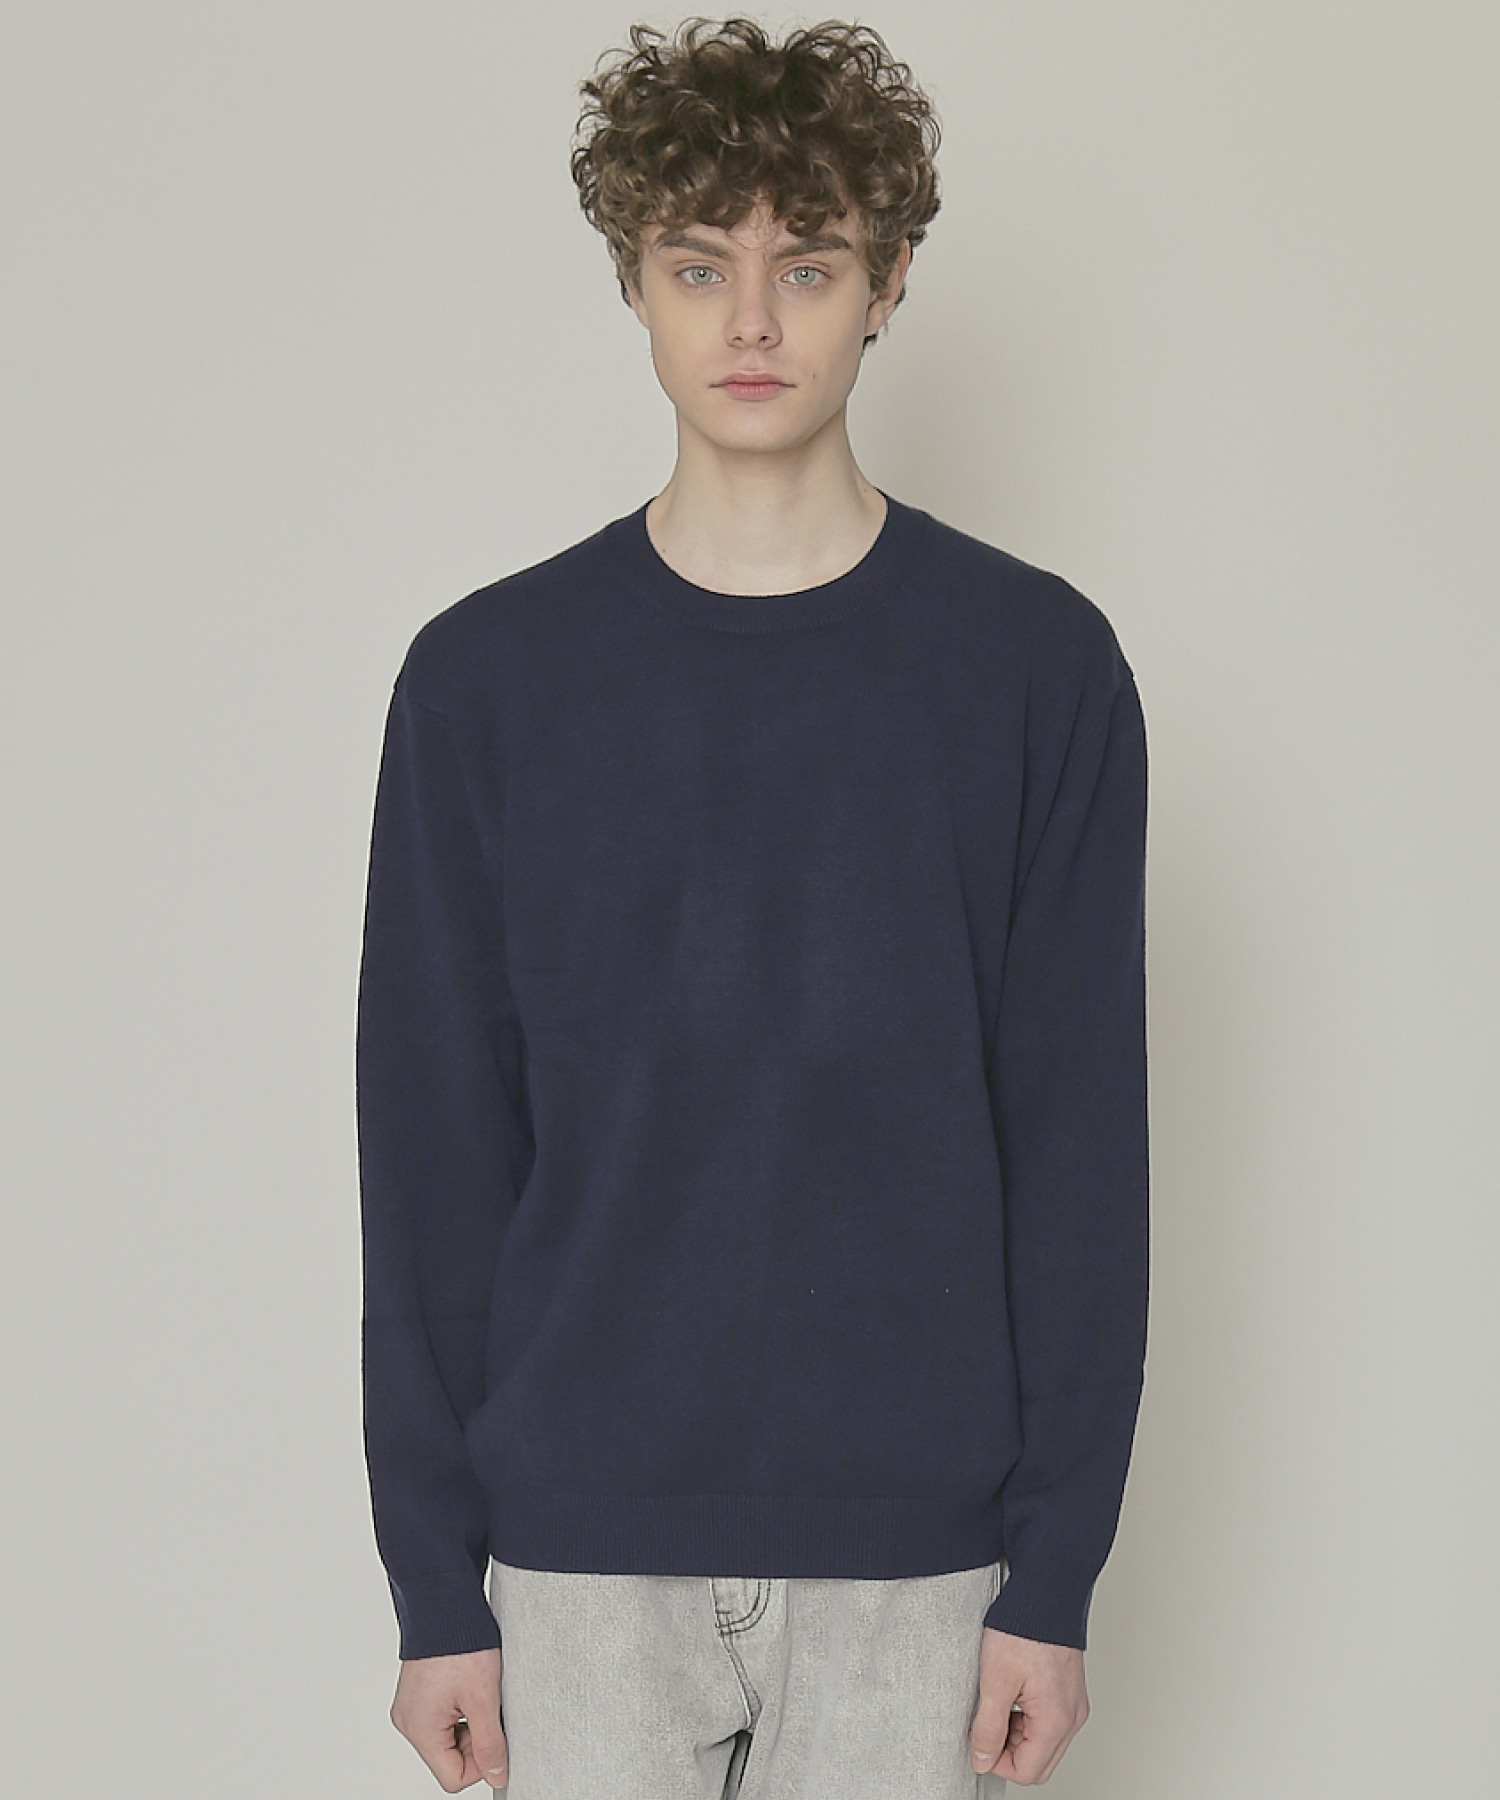 DWS SOFT BASIC ROUND SWEATER(NAVY)